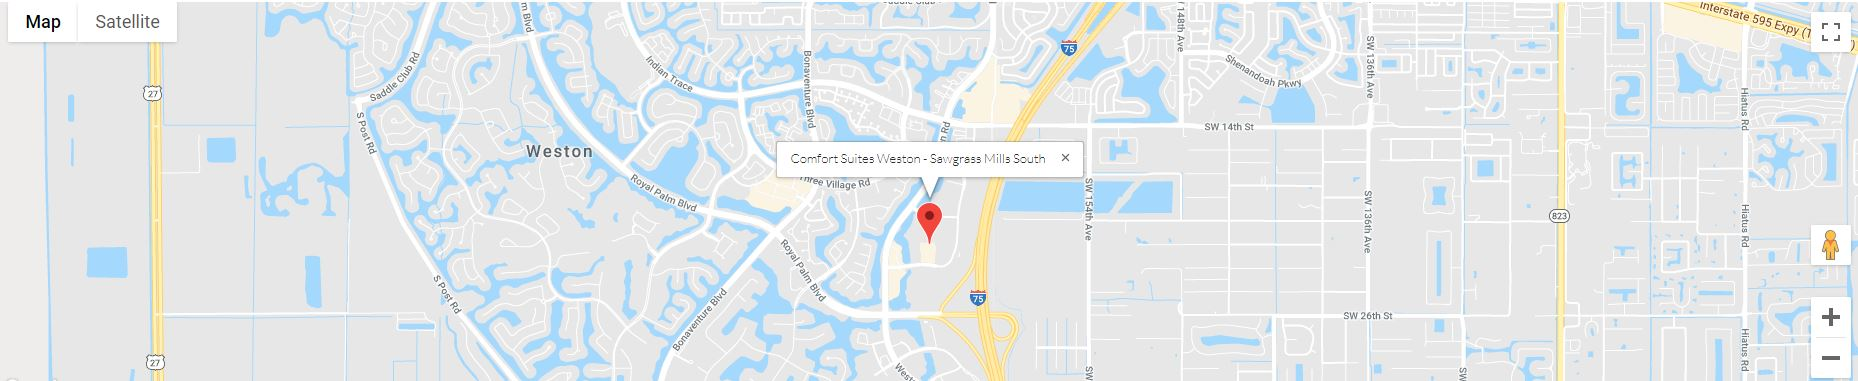 Comfort Suites Weston - Sawgrass Mills South Map